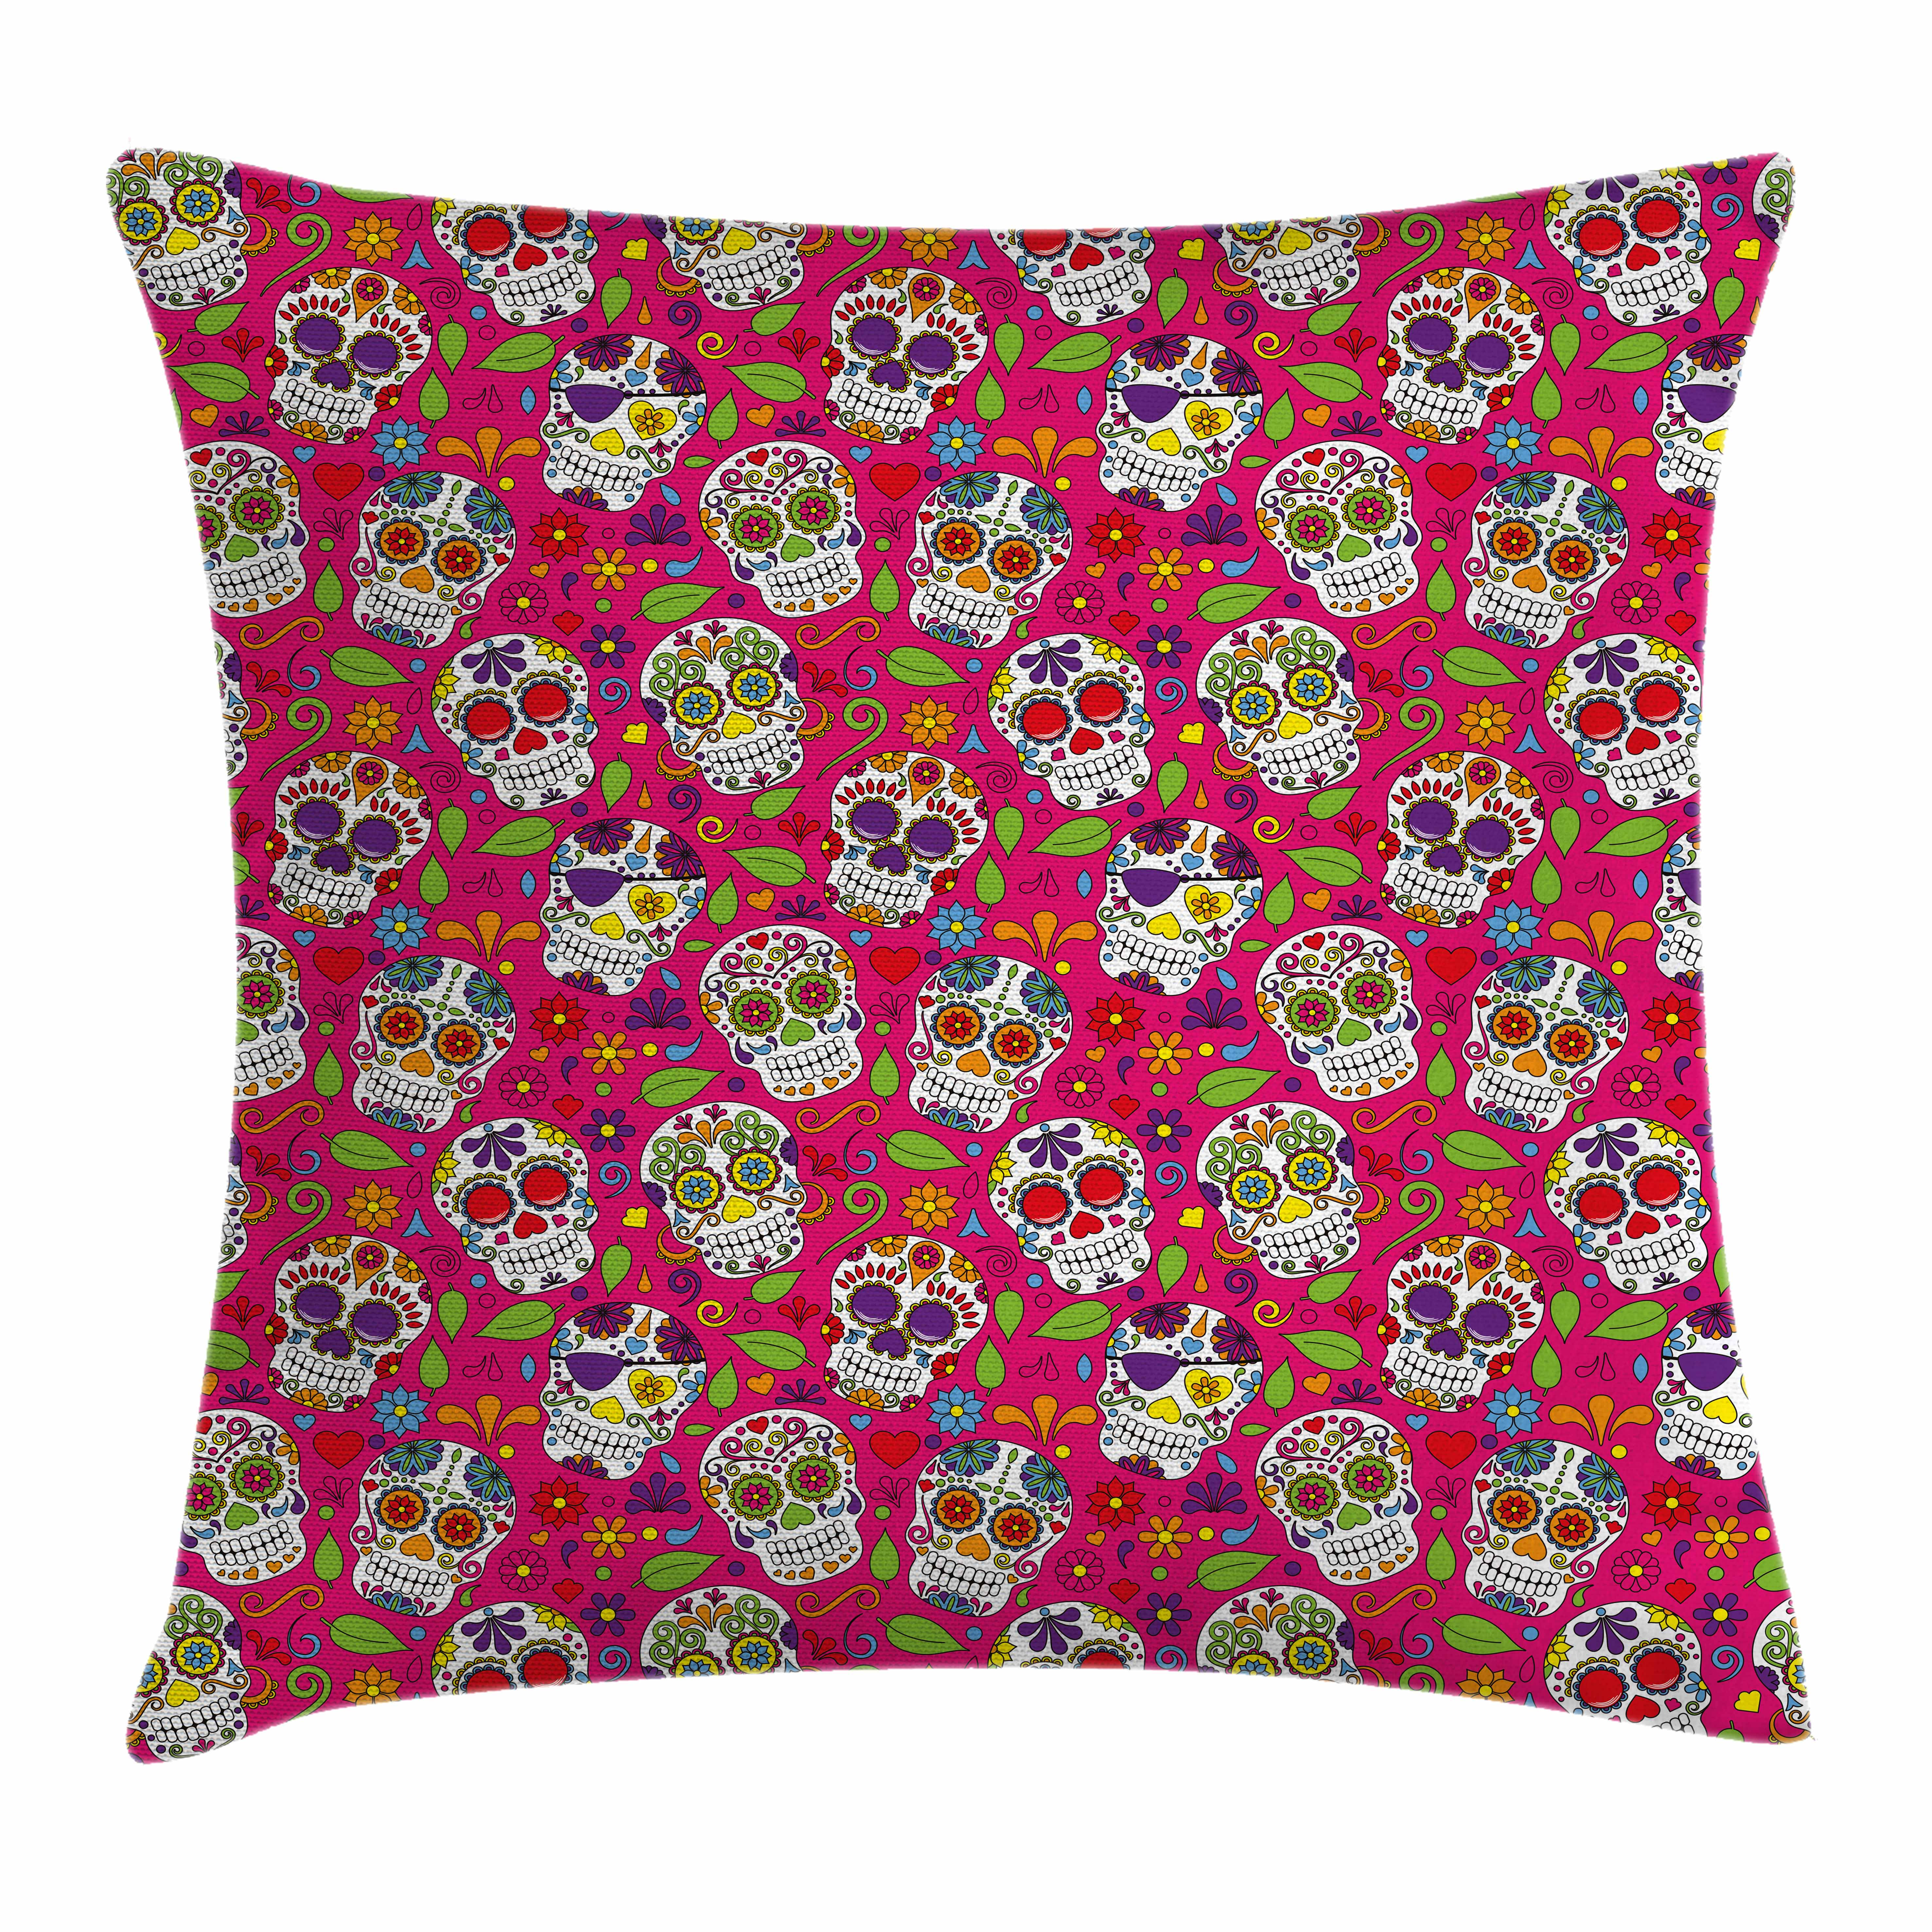 Sugar Skull Decor Throw Pillow Cushion Cover, Colorful Festive Skulls  Leaves Motifs Pirate Cemetery Graveyard